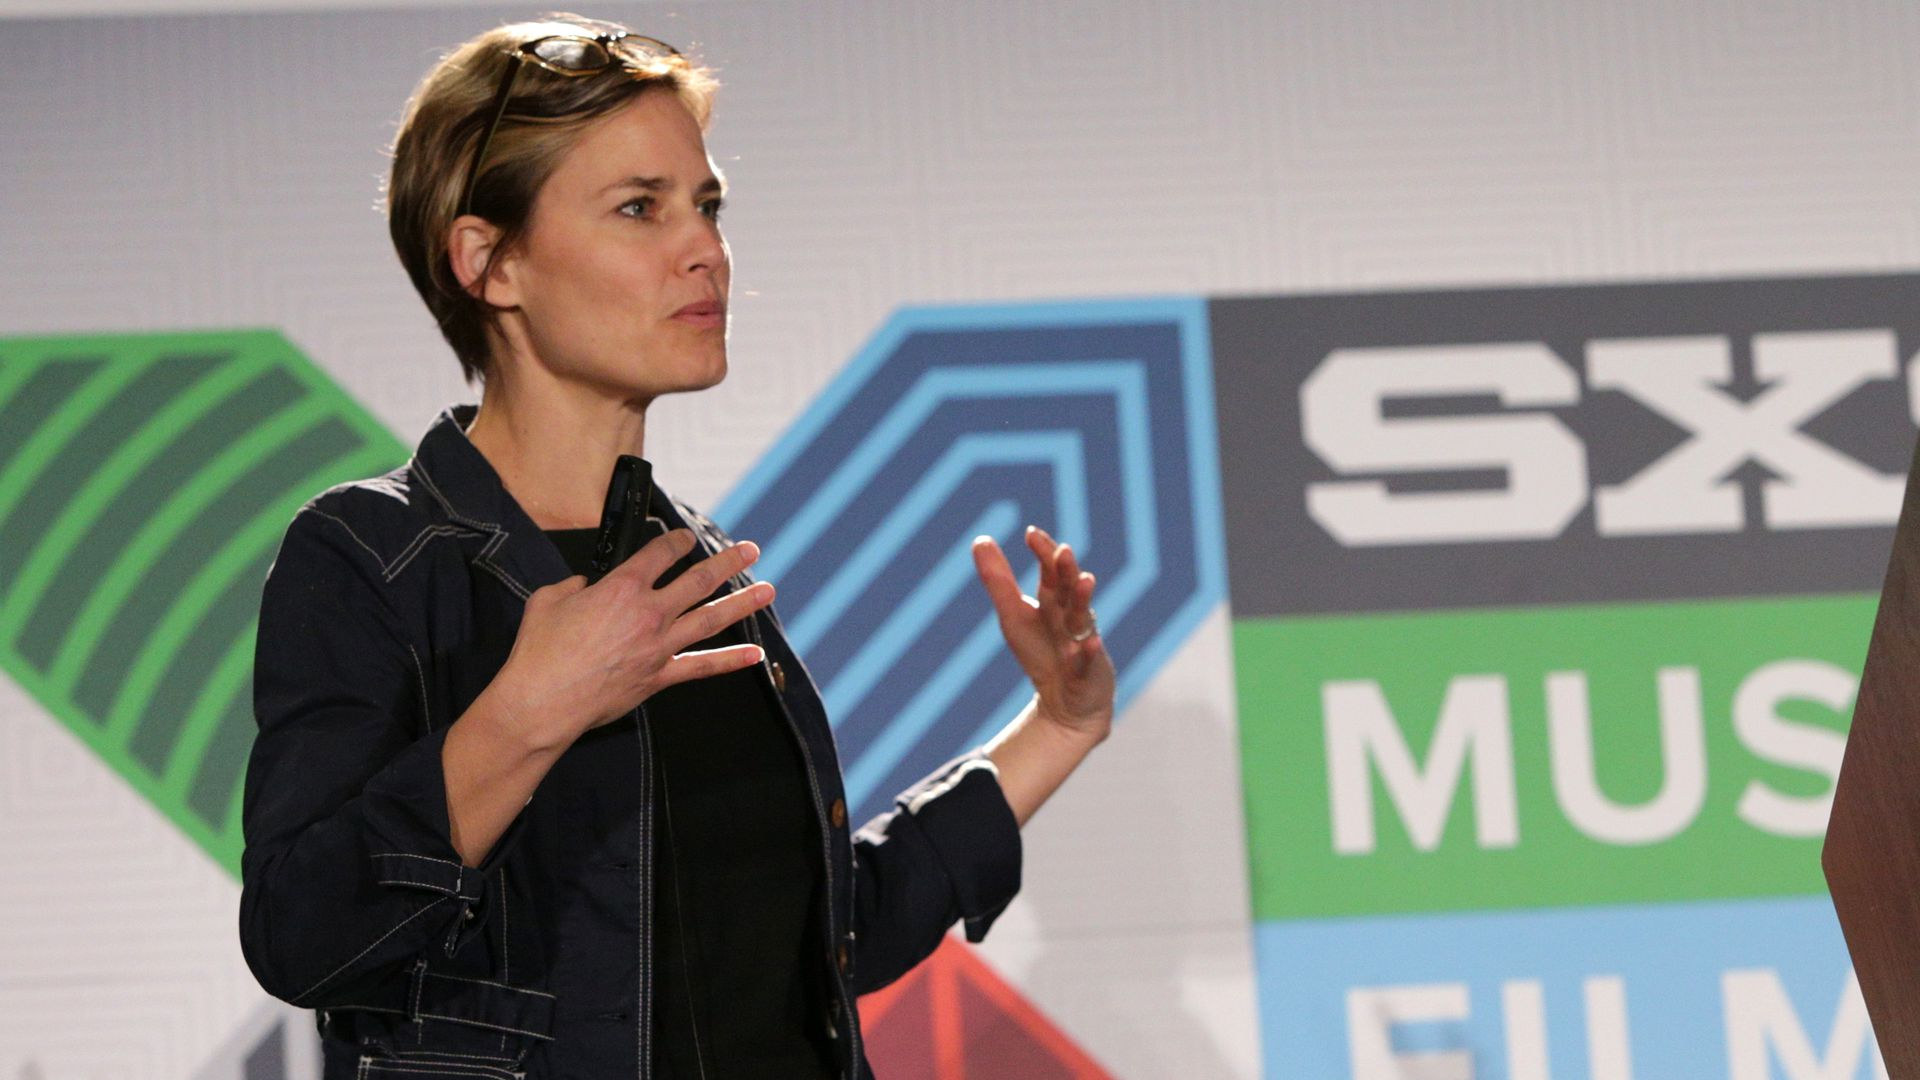 Code for America founder Jennifer Pahlka, speaking at SXSW